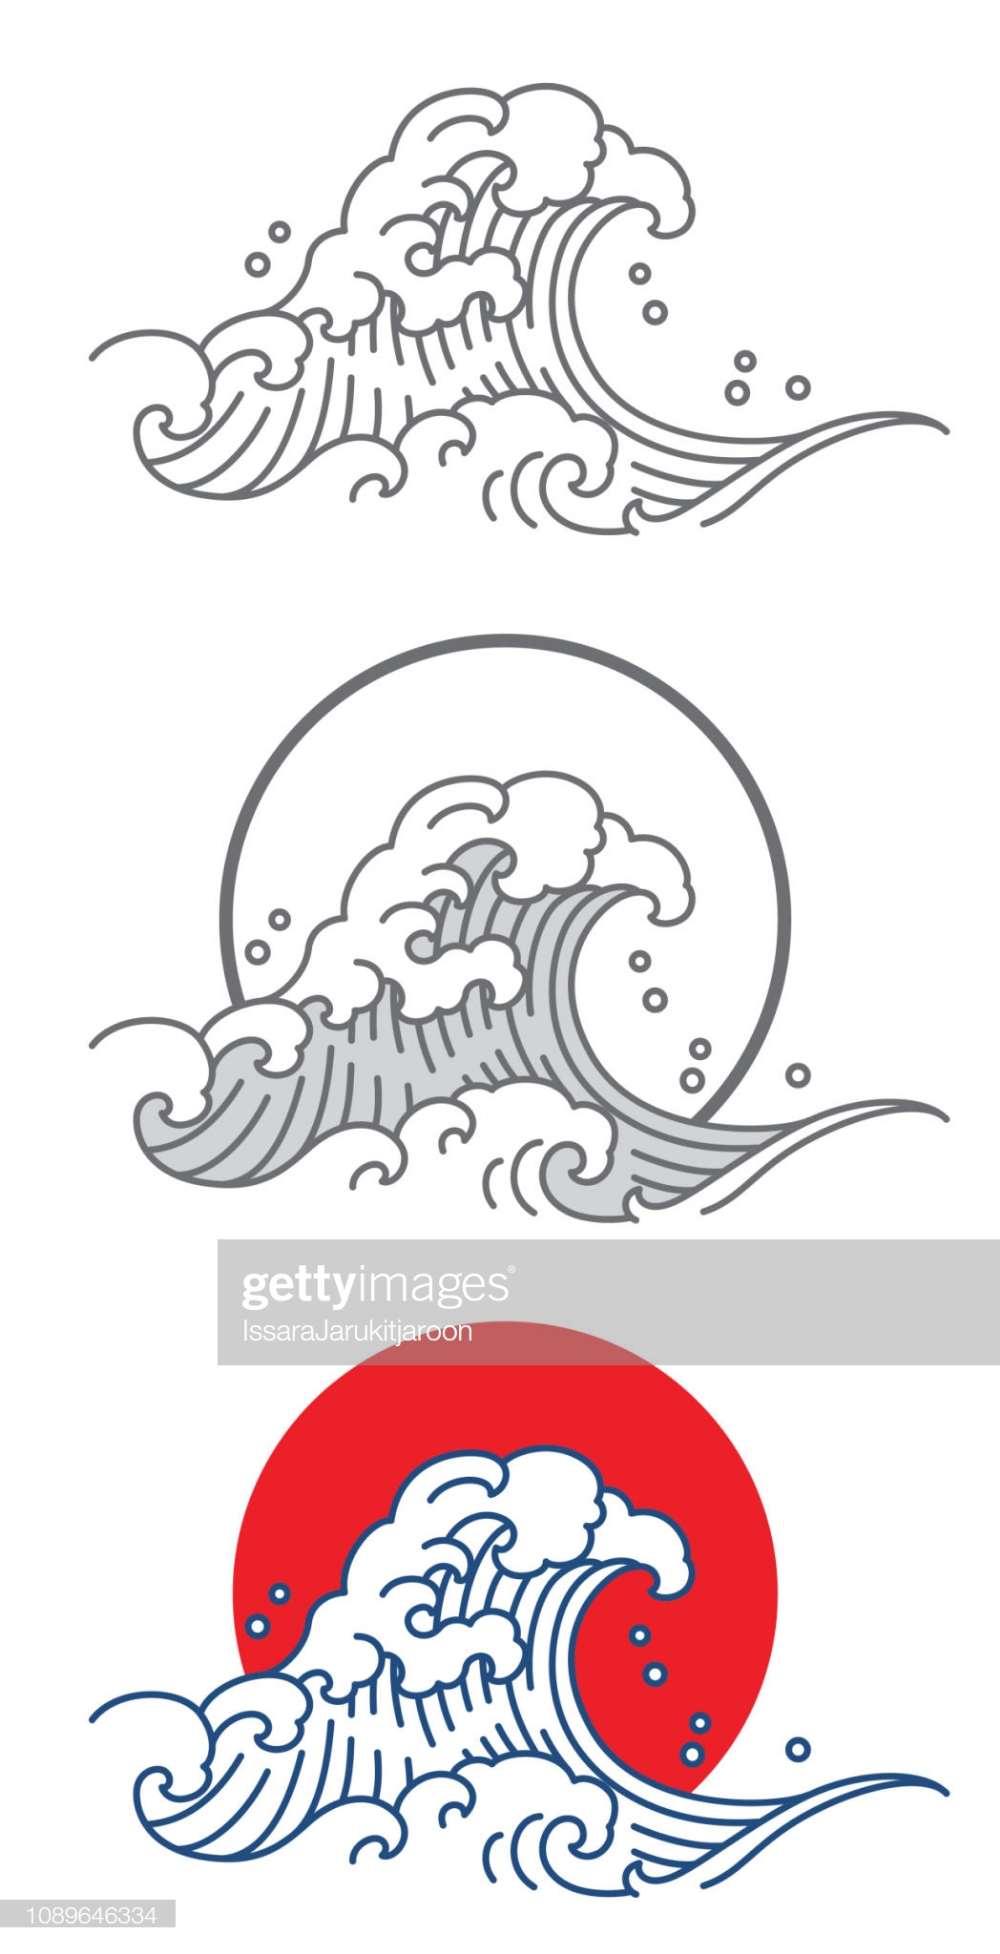 Big Wave Ocean Vector Icon Thai Japan Outline Fill Color With Wave Illustration Wave Drawing Japanese Tattoo Art